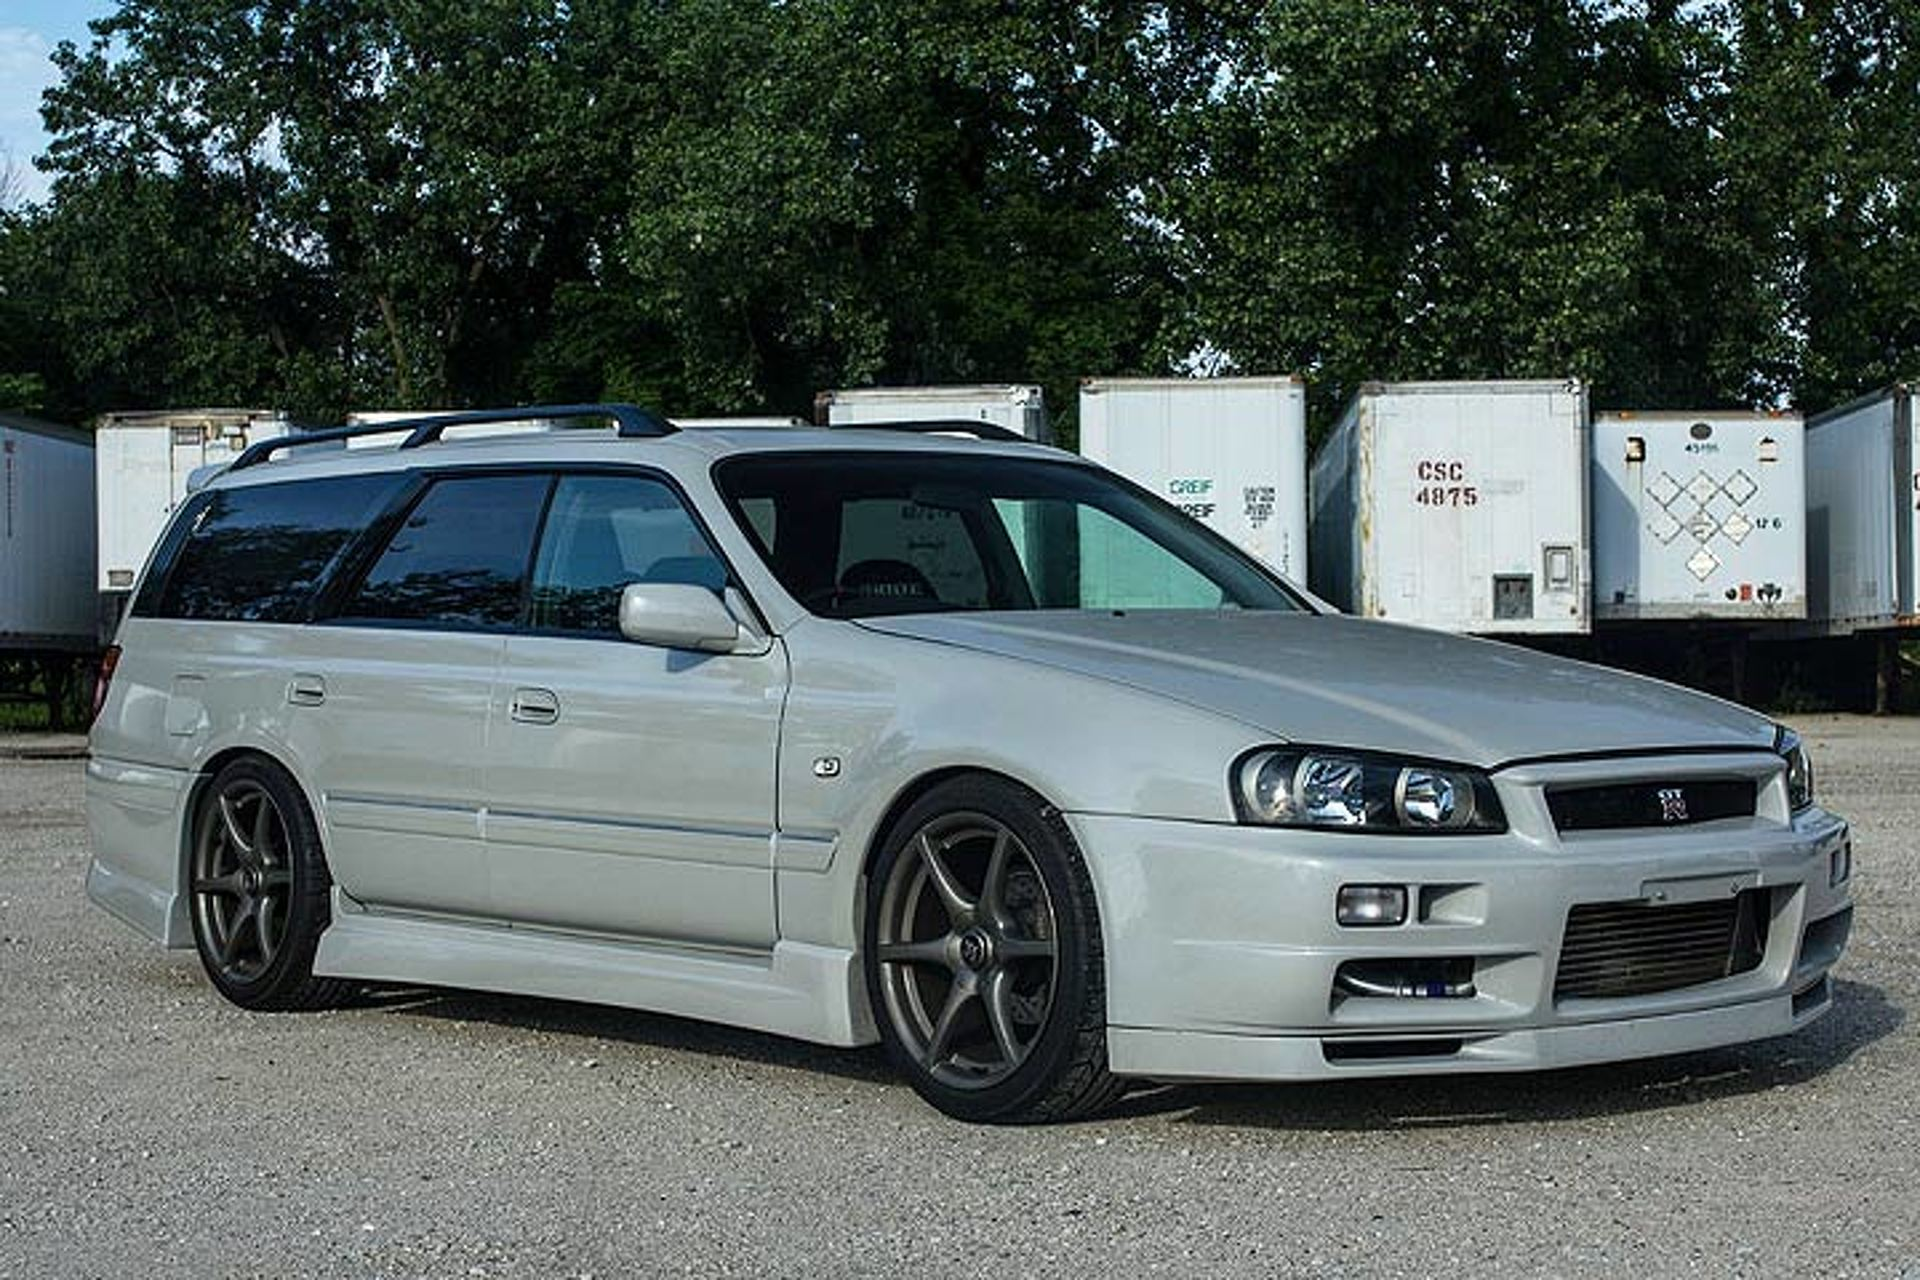 It\'s Real! This Nissan GT-R Wagon is Wild and For Sale in the USA